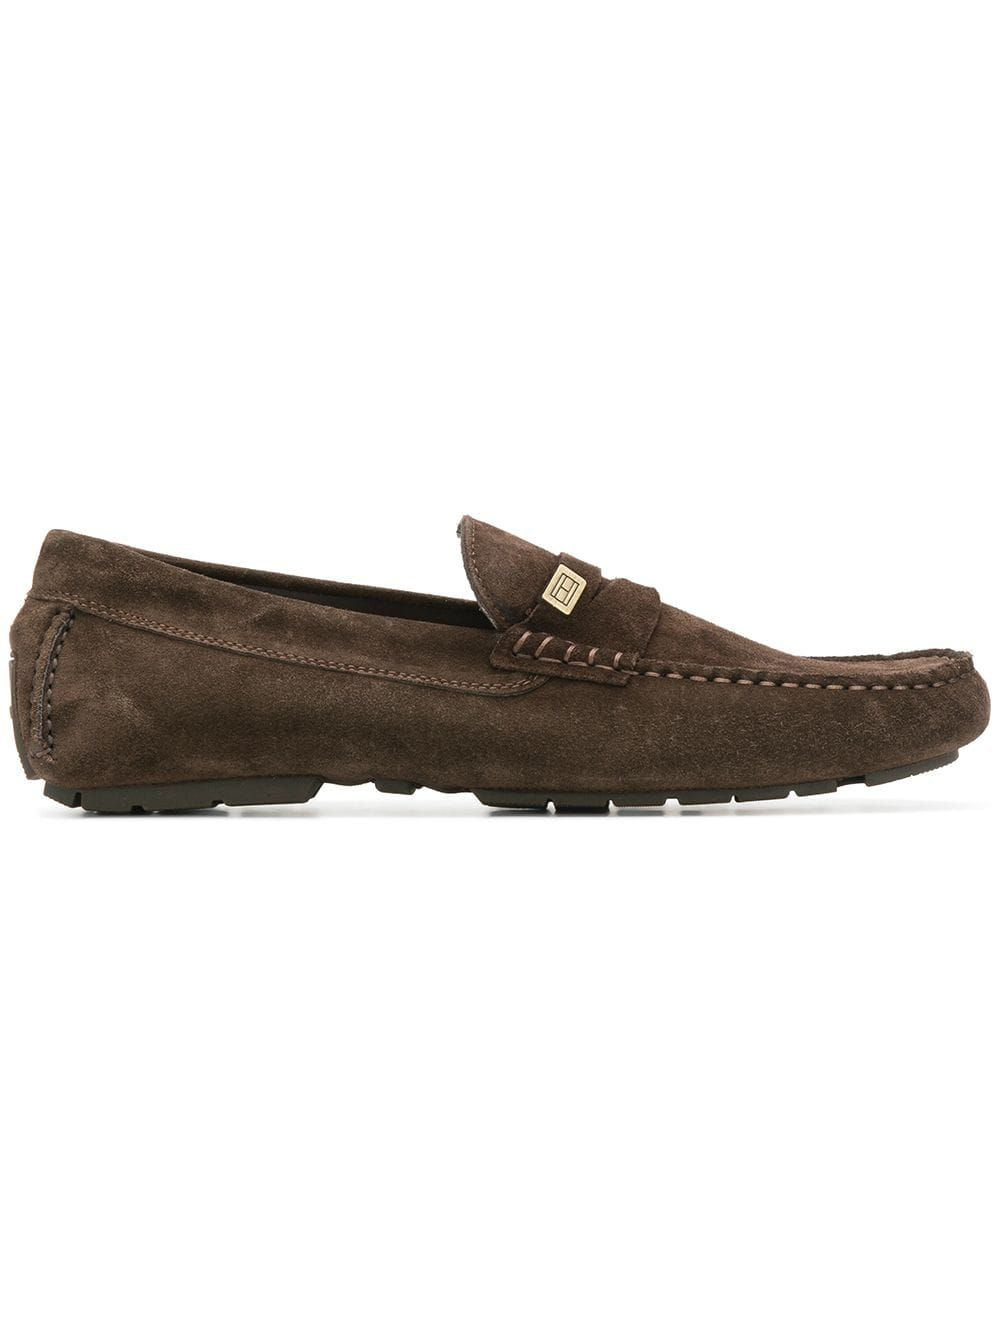 1416a59f0d TOMMY HILFIGER TOMMY HILFIGER CLASSIC LOAFERS - BROWN ...